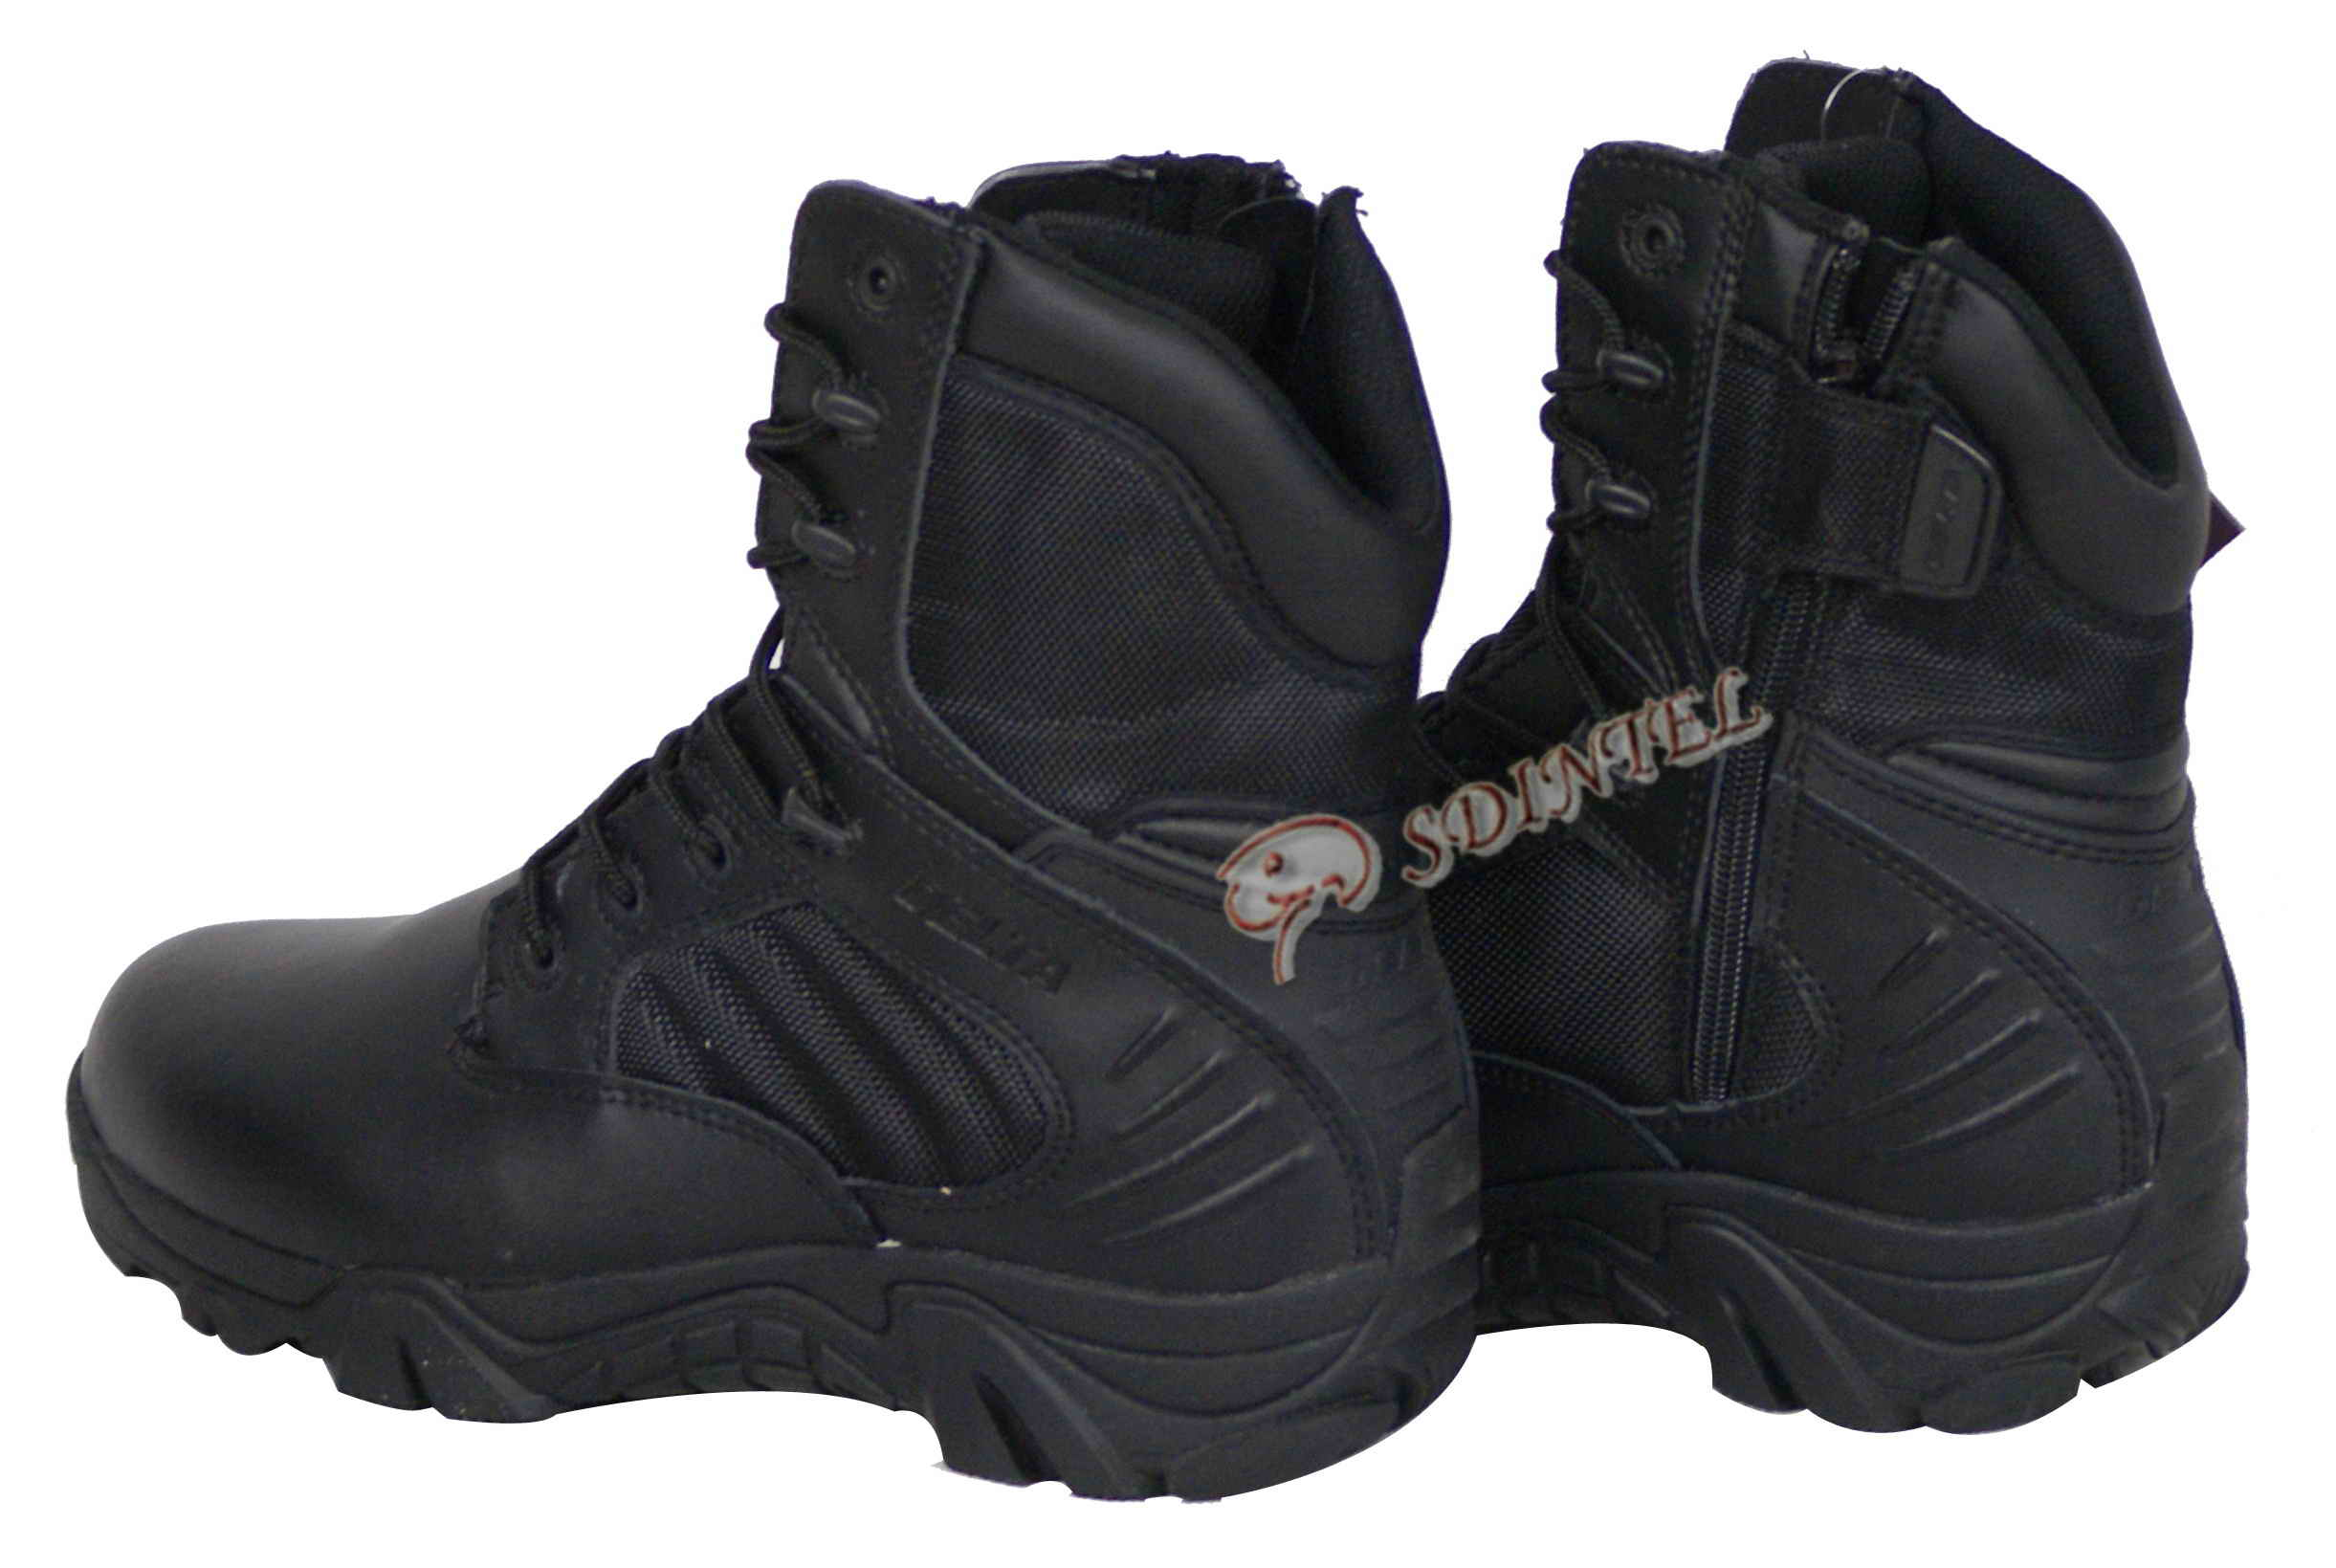 MENS-ARMY-MILITARY-SECURITY-PATROL-COMBAT-TACTICAL-SHOES-BOOTS-BLACK-B